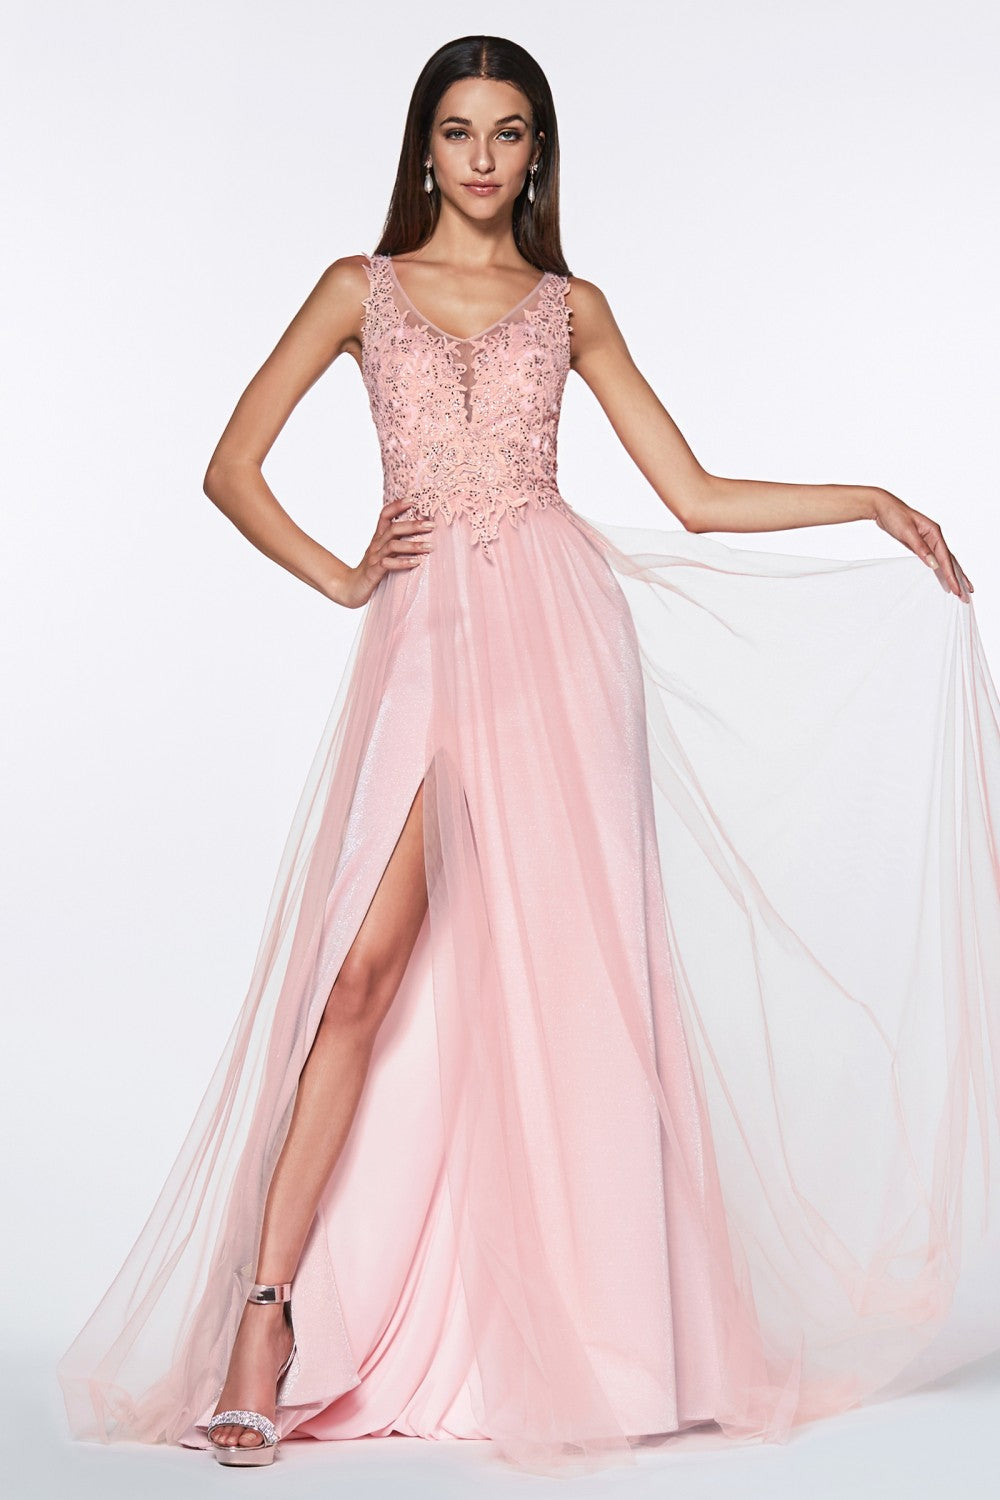 Cinderella Divine Chart I CD KV 1040 - A-Line Tulle Gown with Jeweled Lace Bodice & Leg Slit - Diggz Prom